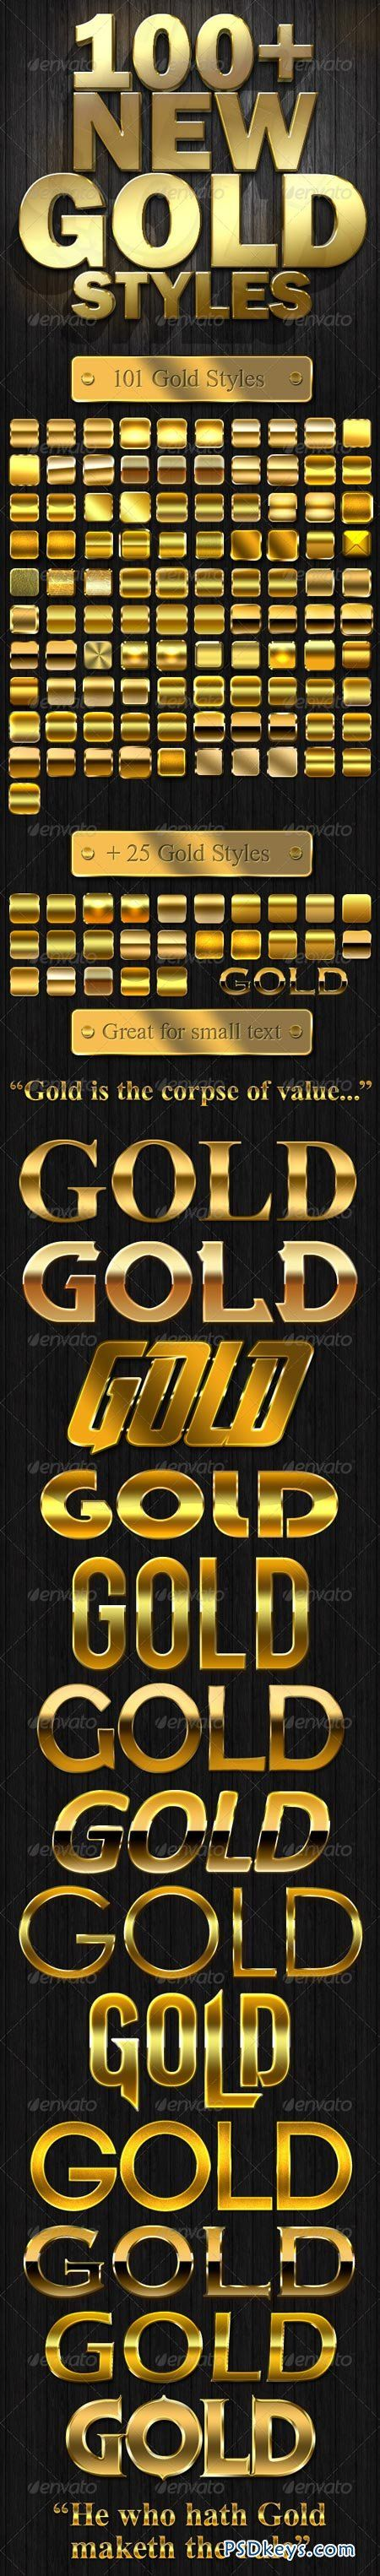 100+ New Gold Styles 5337340   new design 2   Photoshop